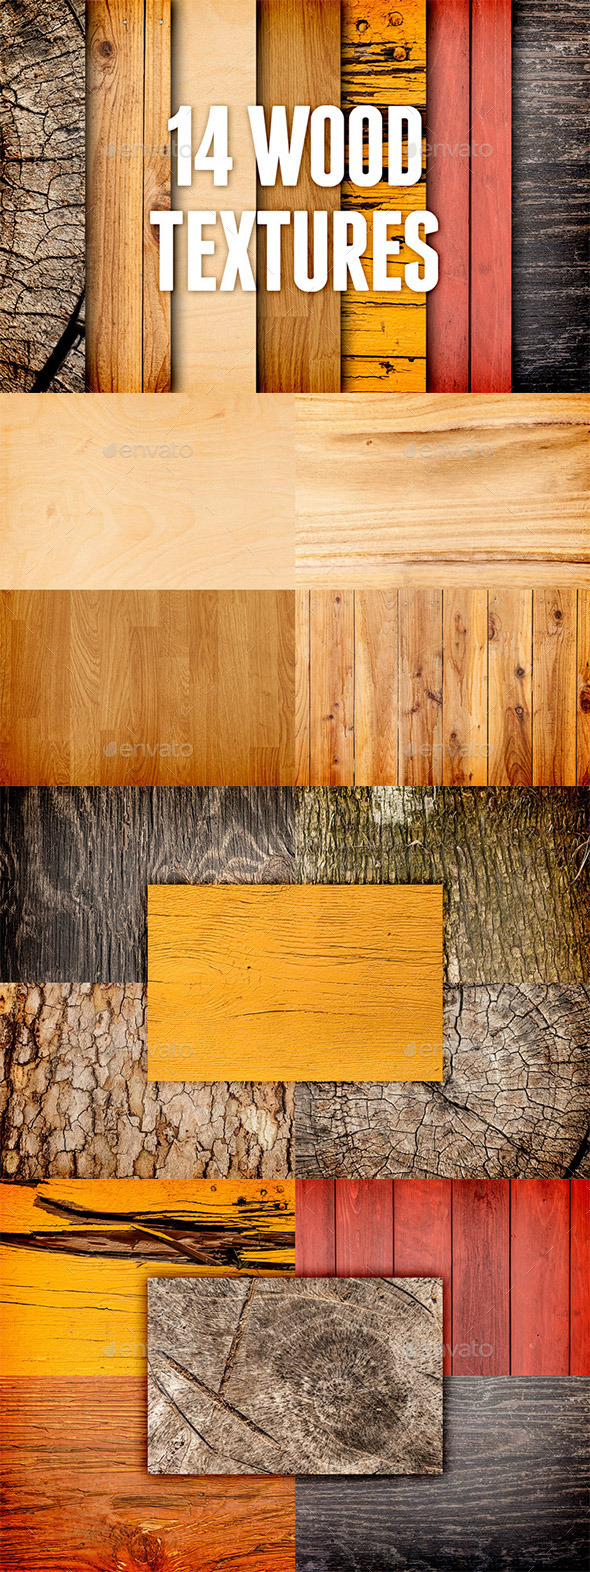 GraphicRiver Wood Textures Pack 3 9349669